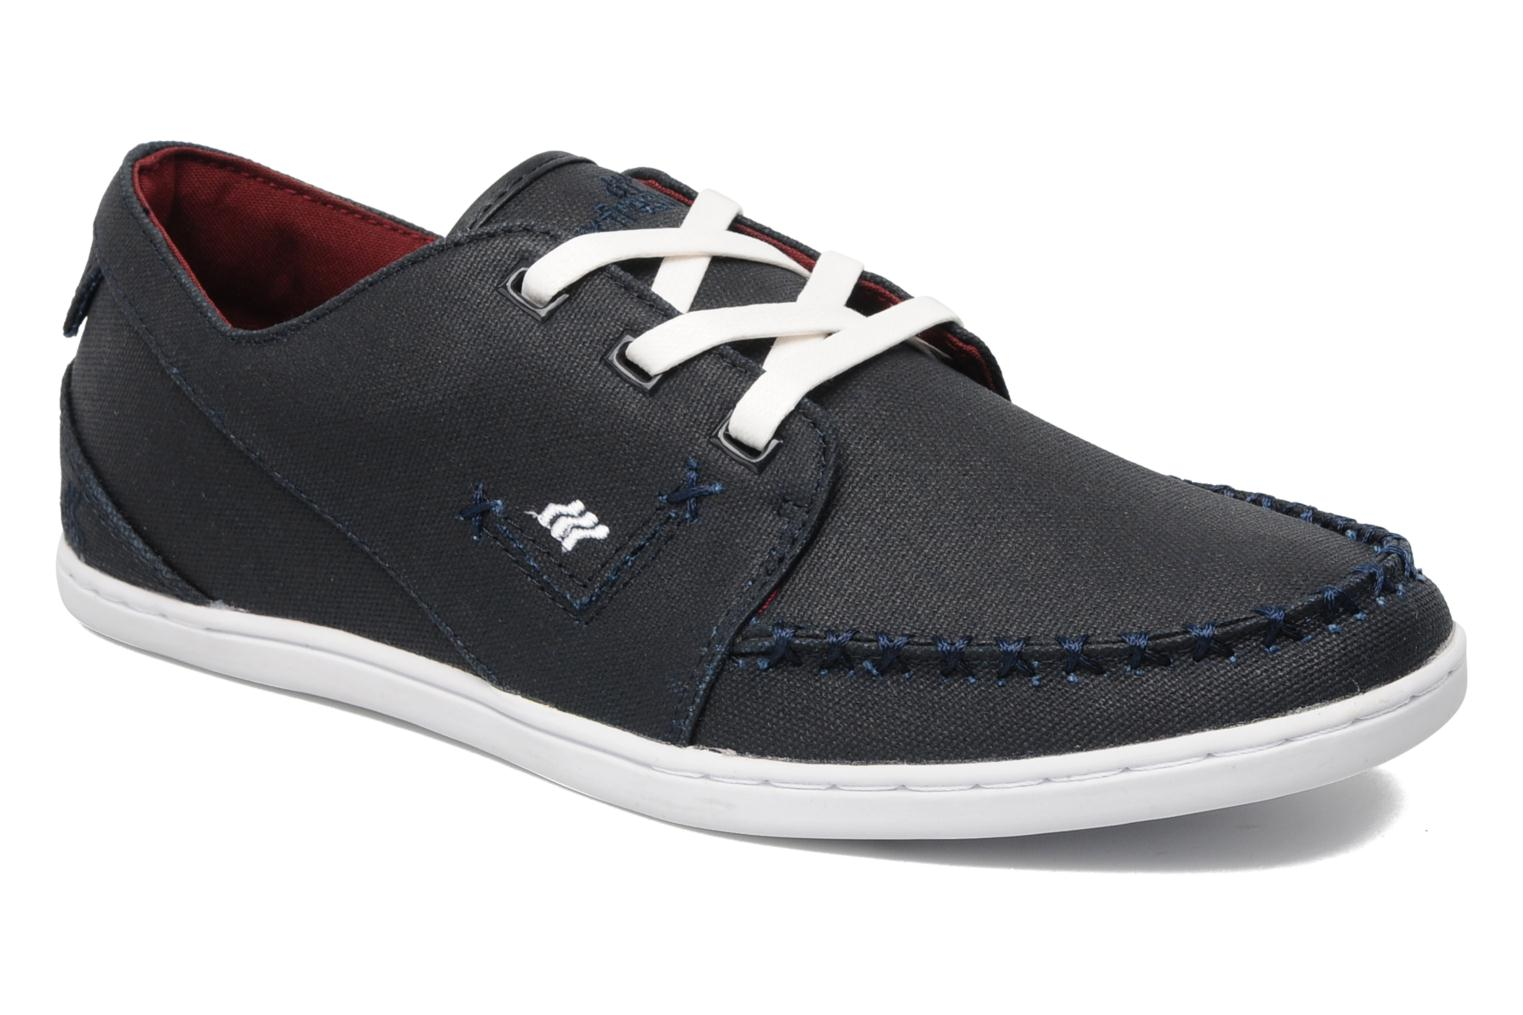 KEEL W Navy/white